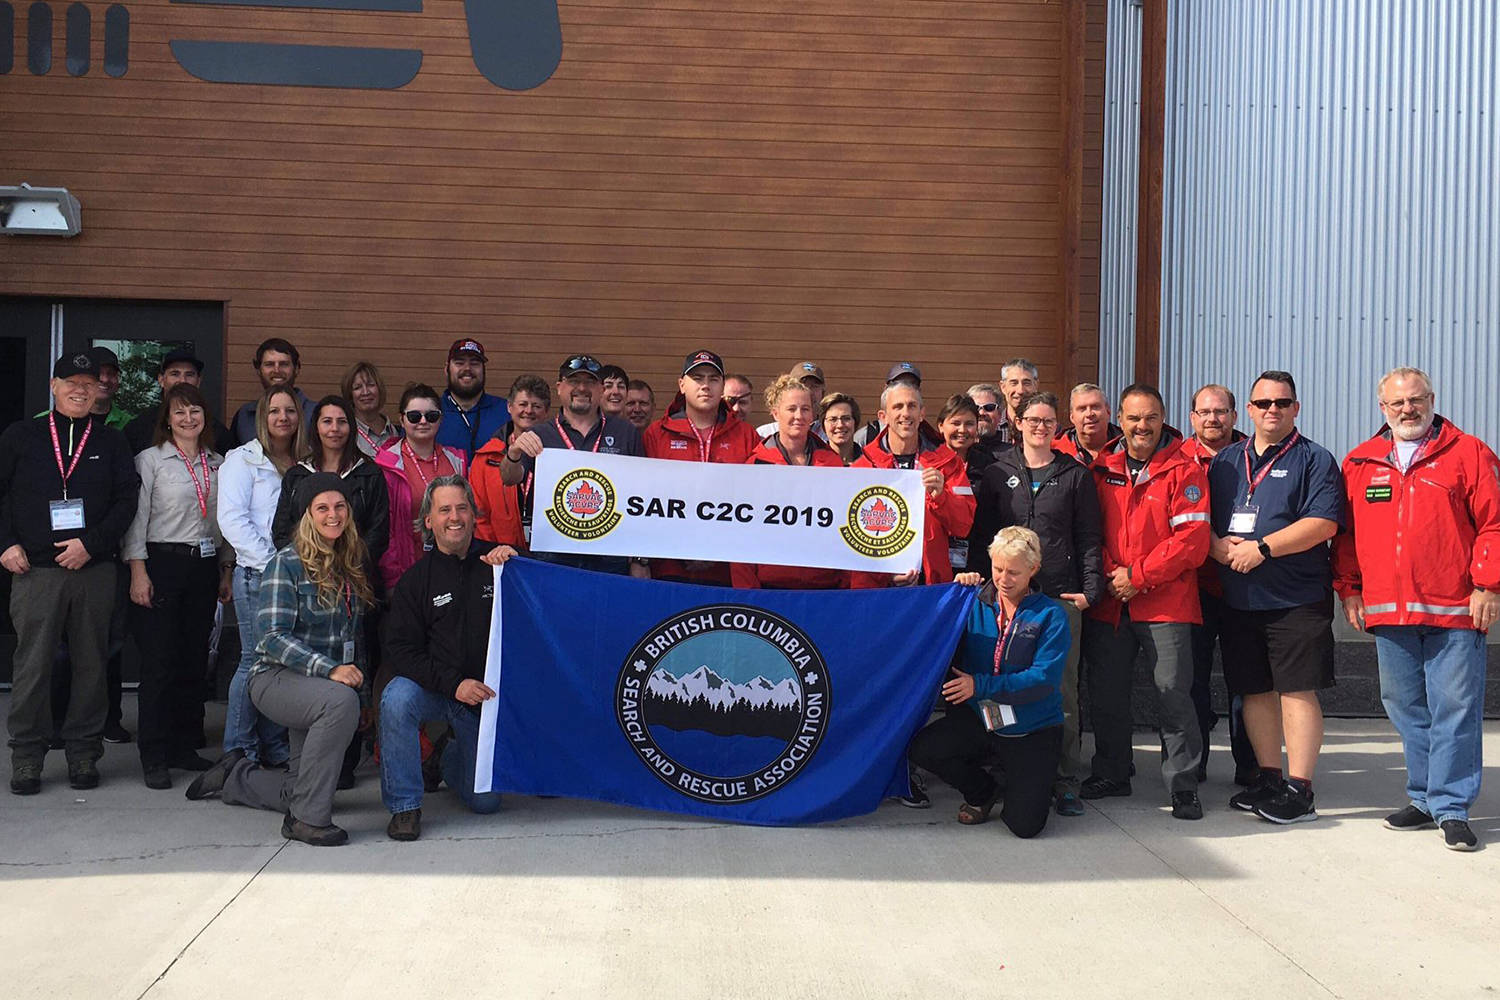 Peninsula Search and Rescue members volunteered more than 5,000 hours in 2019